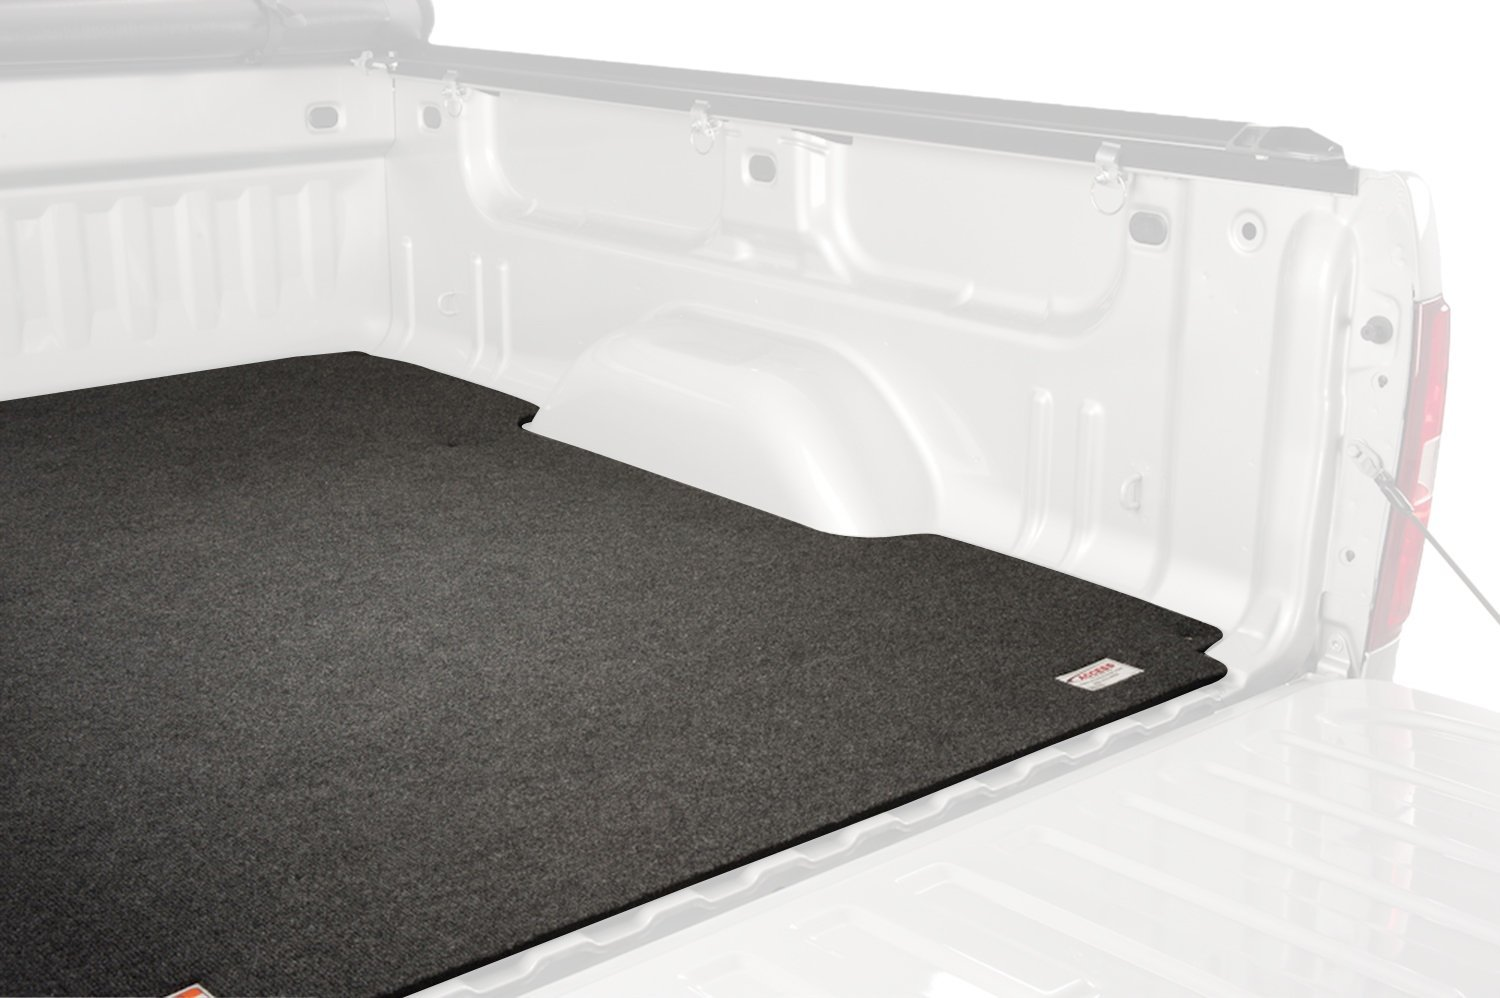 25020359 ACI/ AgriCover/ Access Cover Bed Mat Direct-Fit